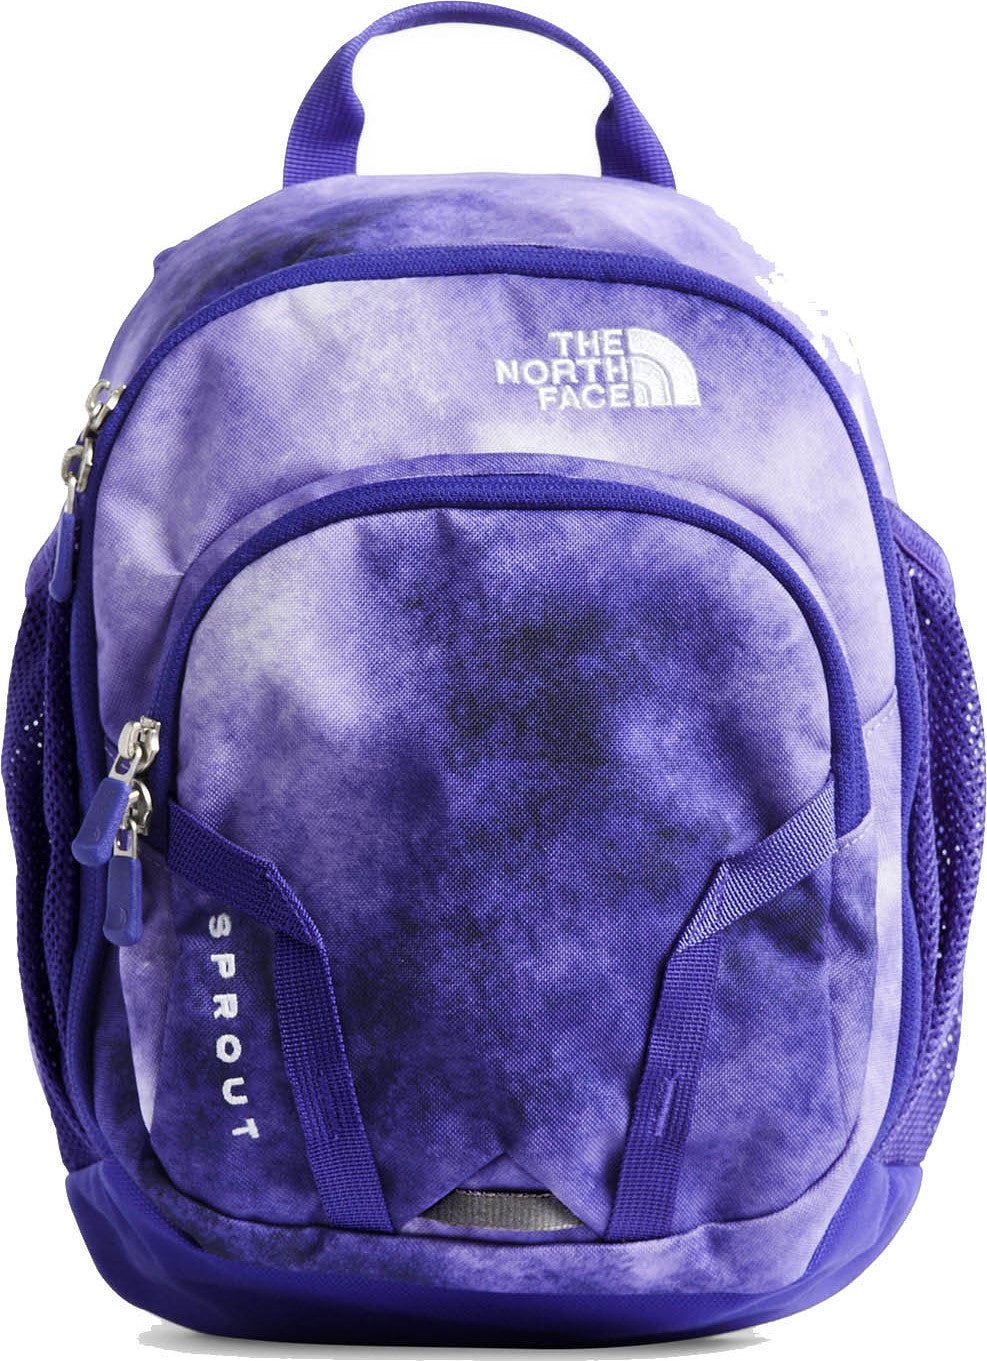 50c7aad9f52 The North Face Sprout 10 L Backpack - Youth | Altitude Sports